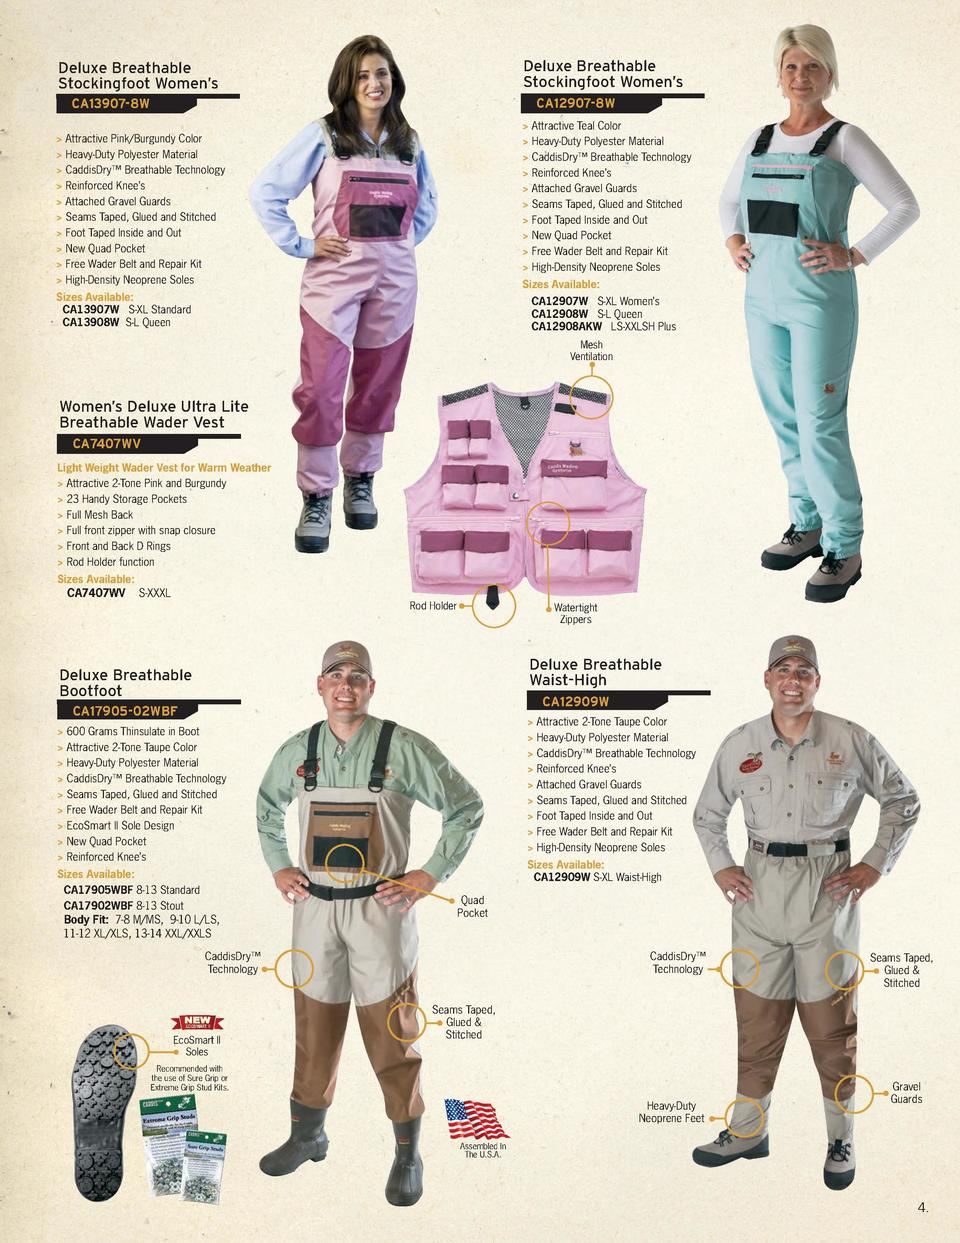 Best Selling Series of Deluxe Breathable  Waders In the world From Alaska to Montauk, New York, Caddis Waders are on the w...